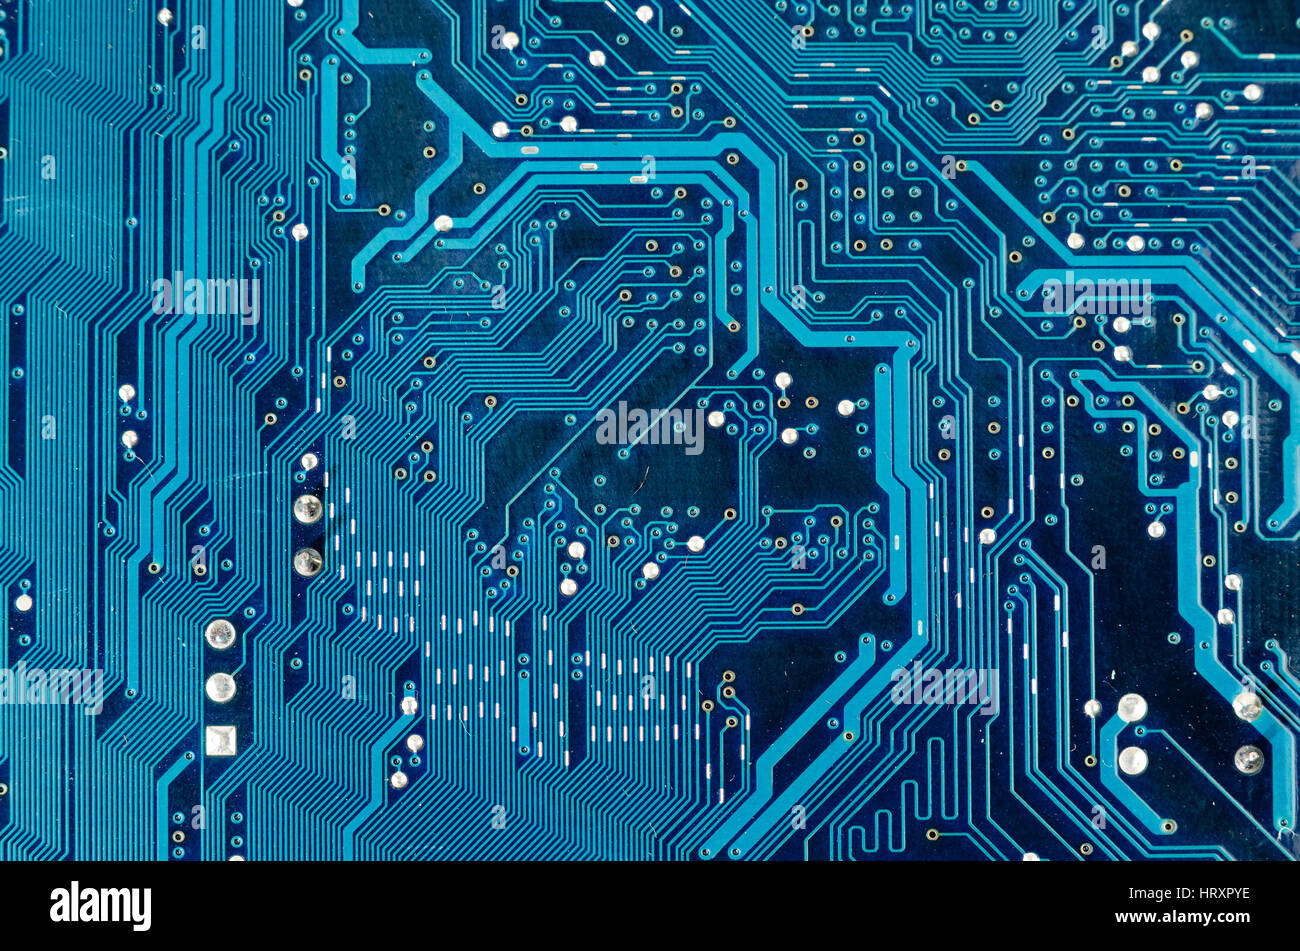 Group Of Circuit Plate Background Board Stock Images Image 31188634 Wallpaper